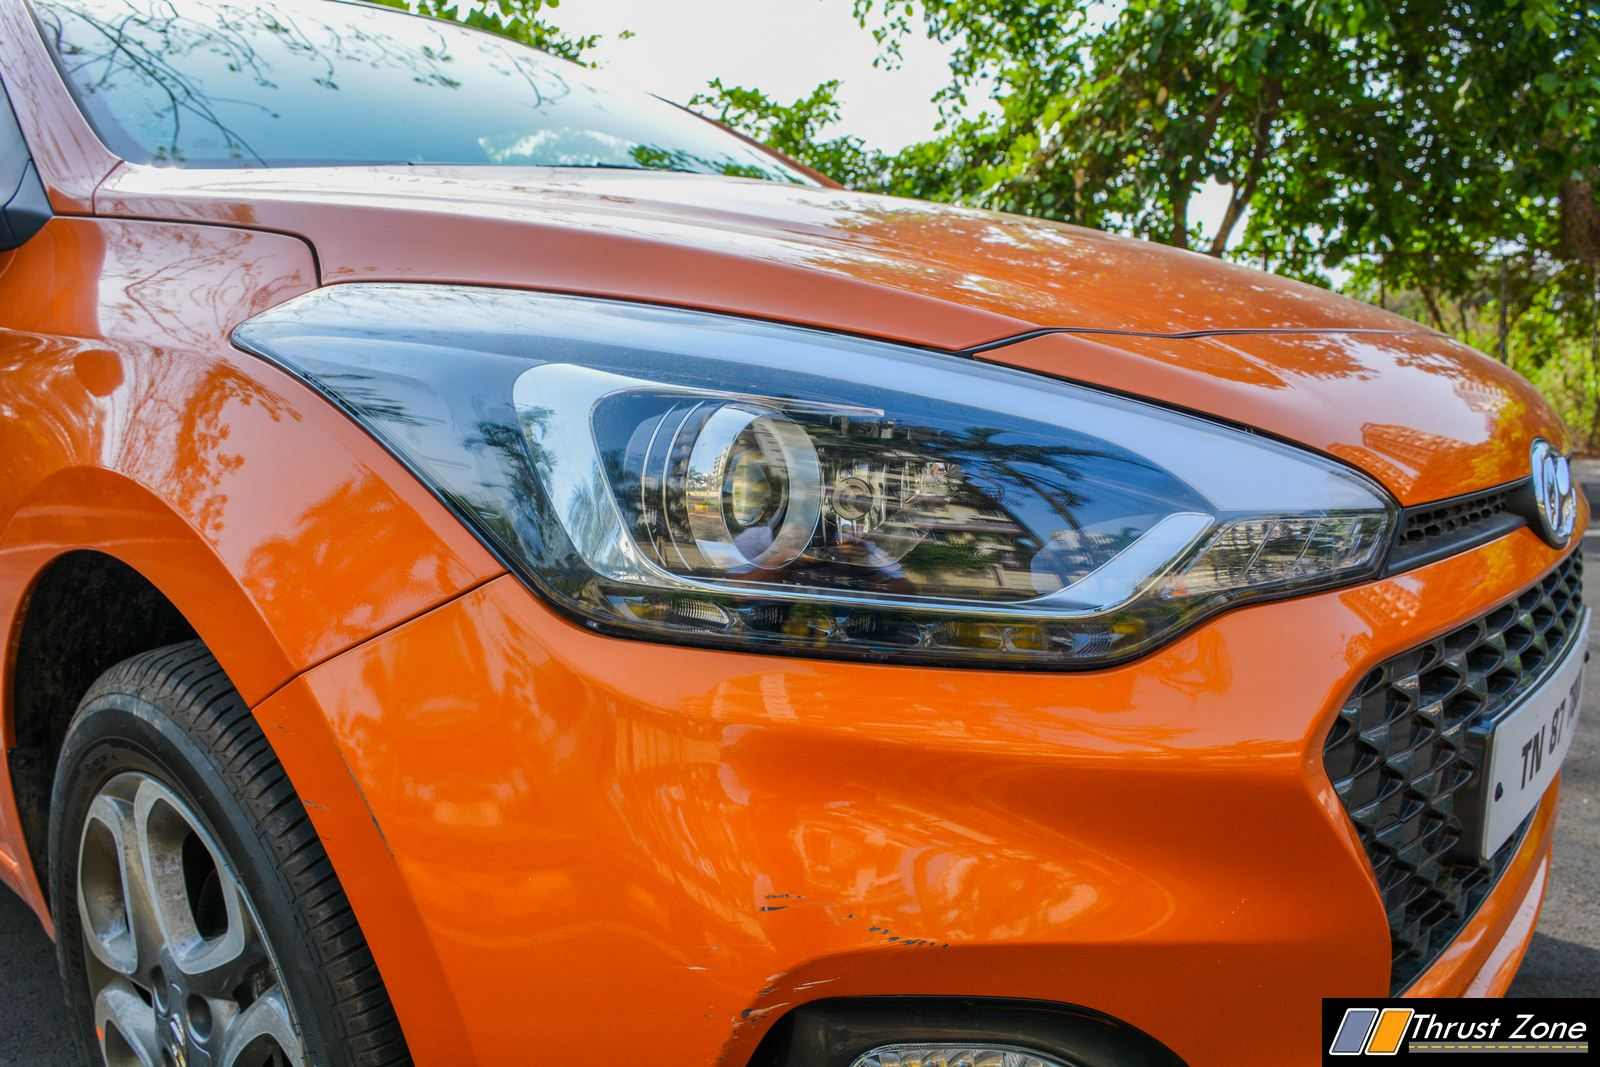 https://www.thrustzone.com/wp-content/uploads/2019/05/2019-hyundai-i20-facelift-review-2.jpg